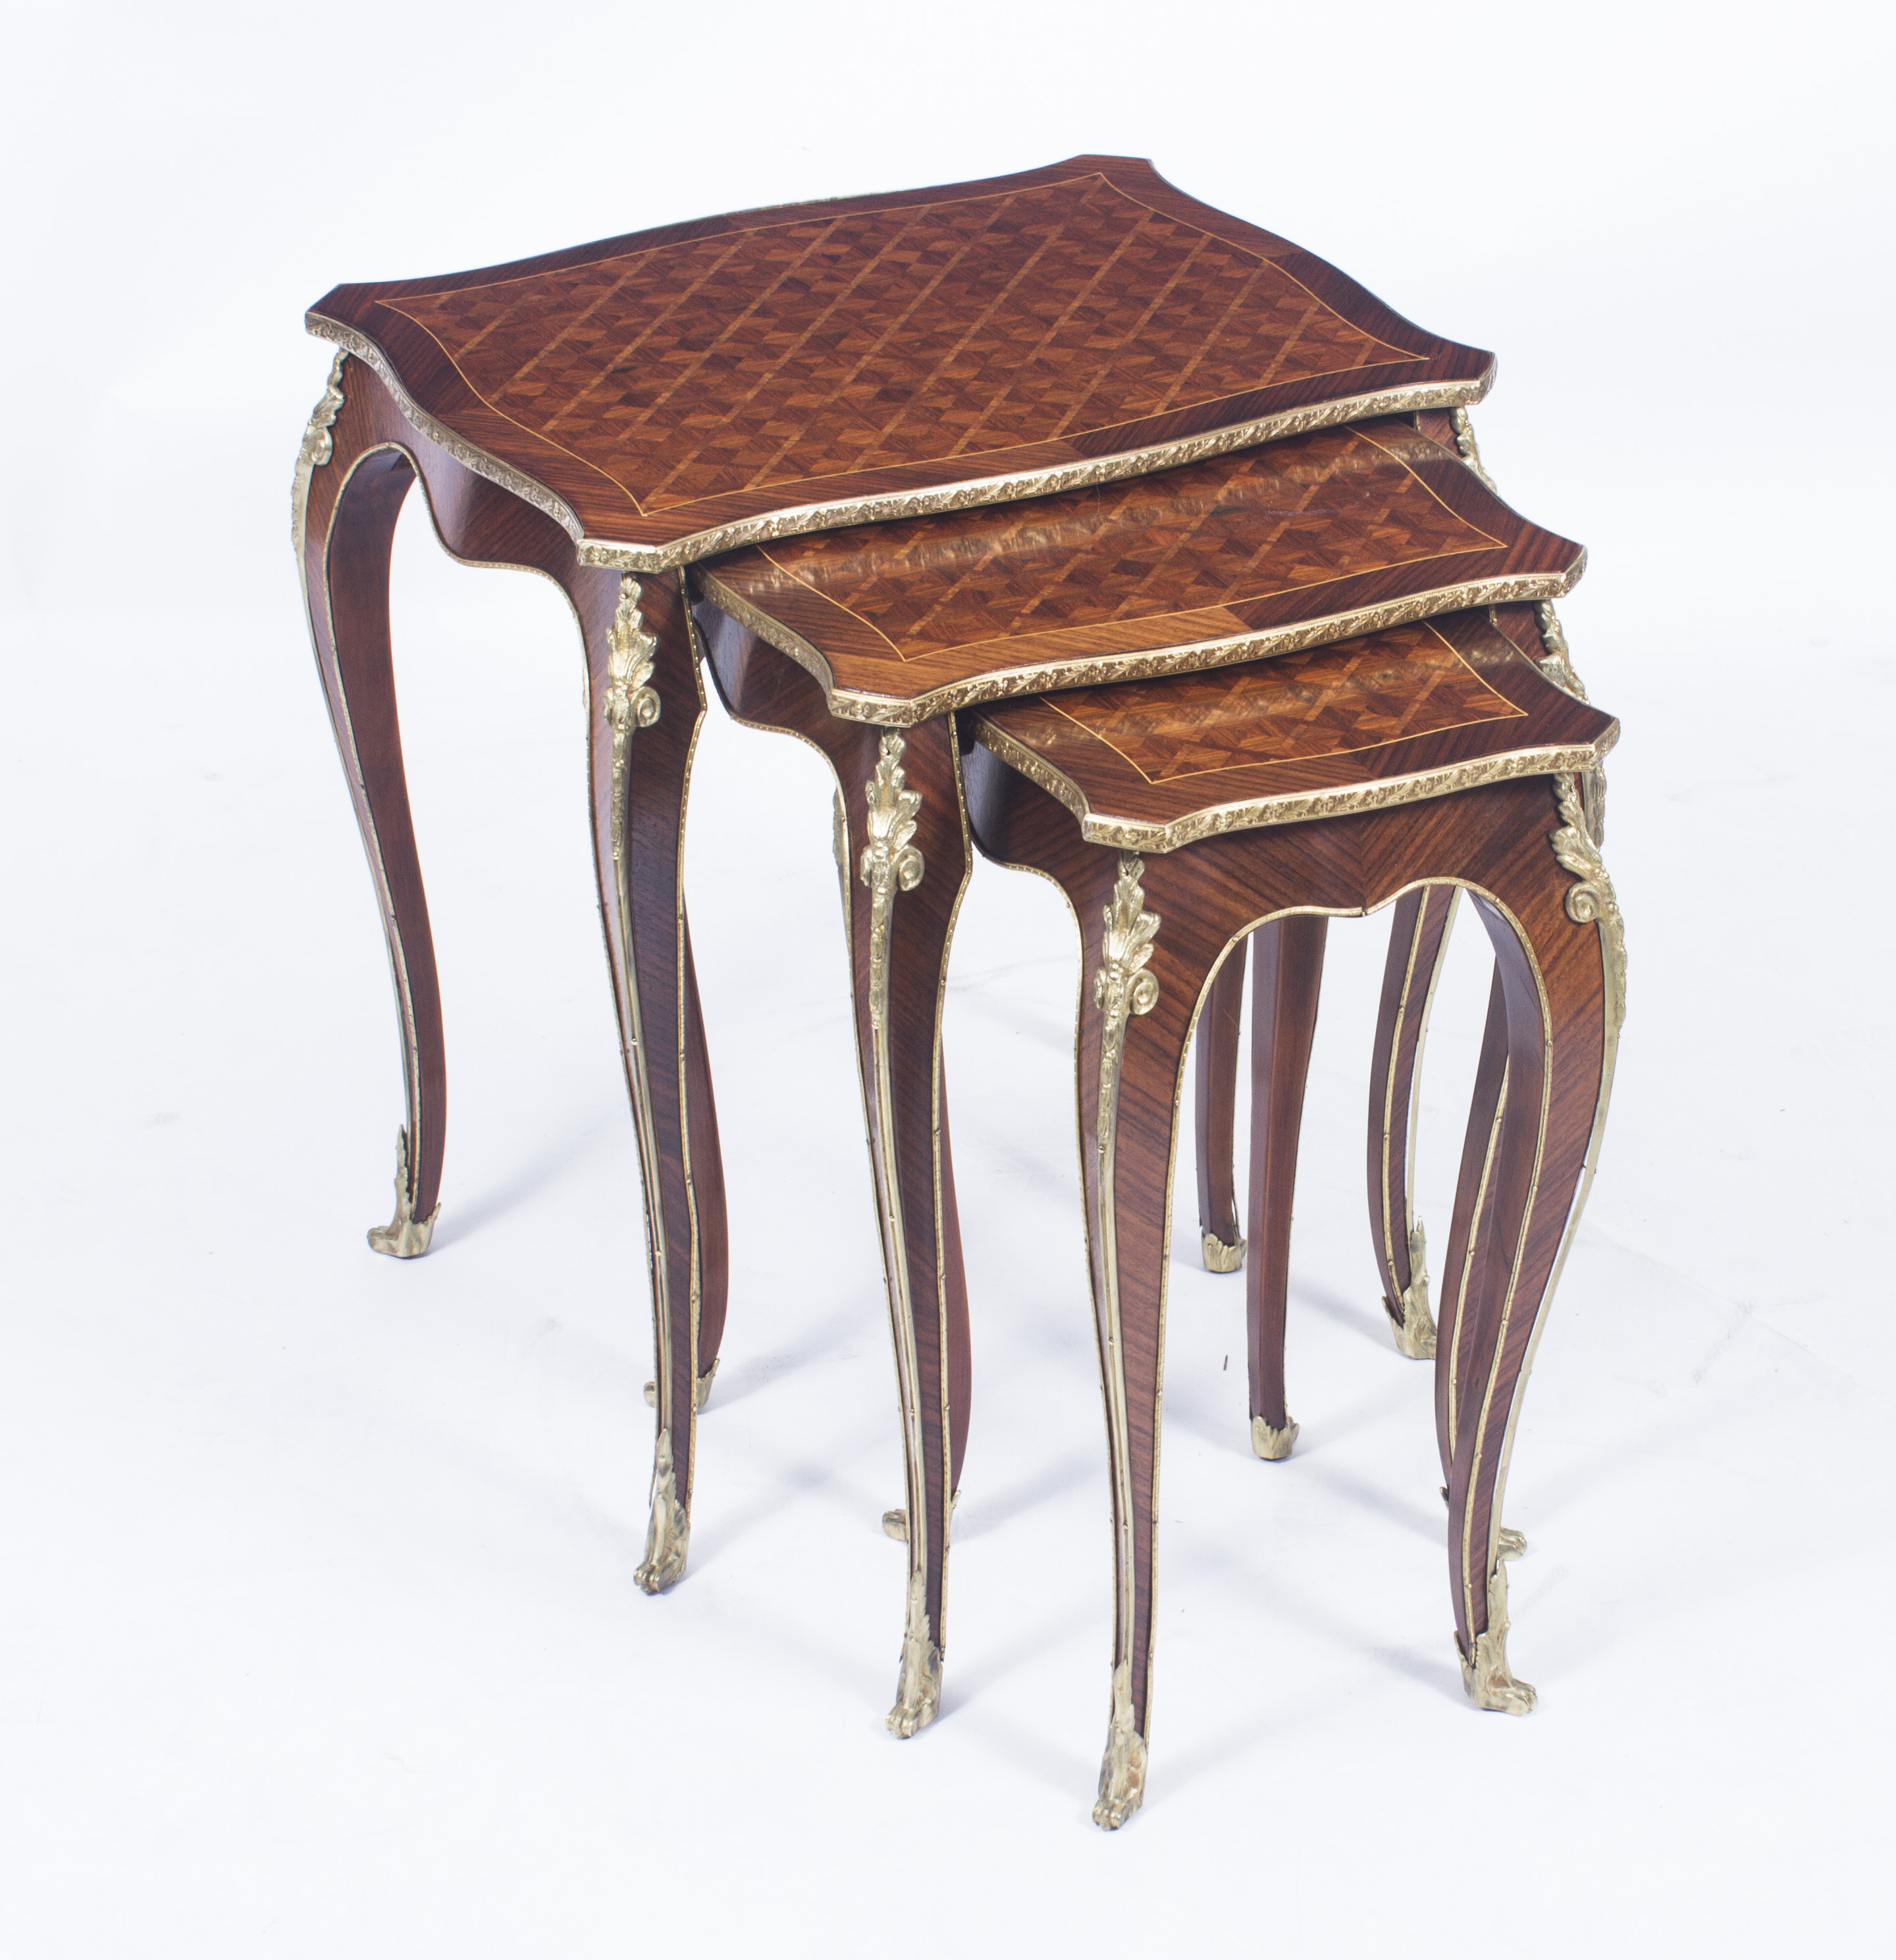 French Parquetry Coffee Table: Antique French Parquetry & Ormolu Mounted Nest Tables